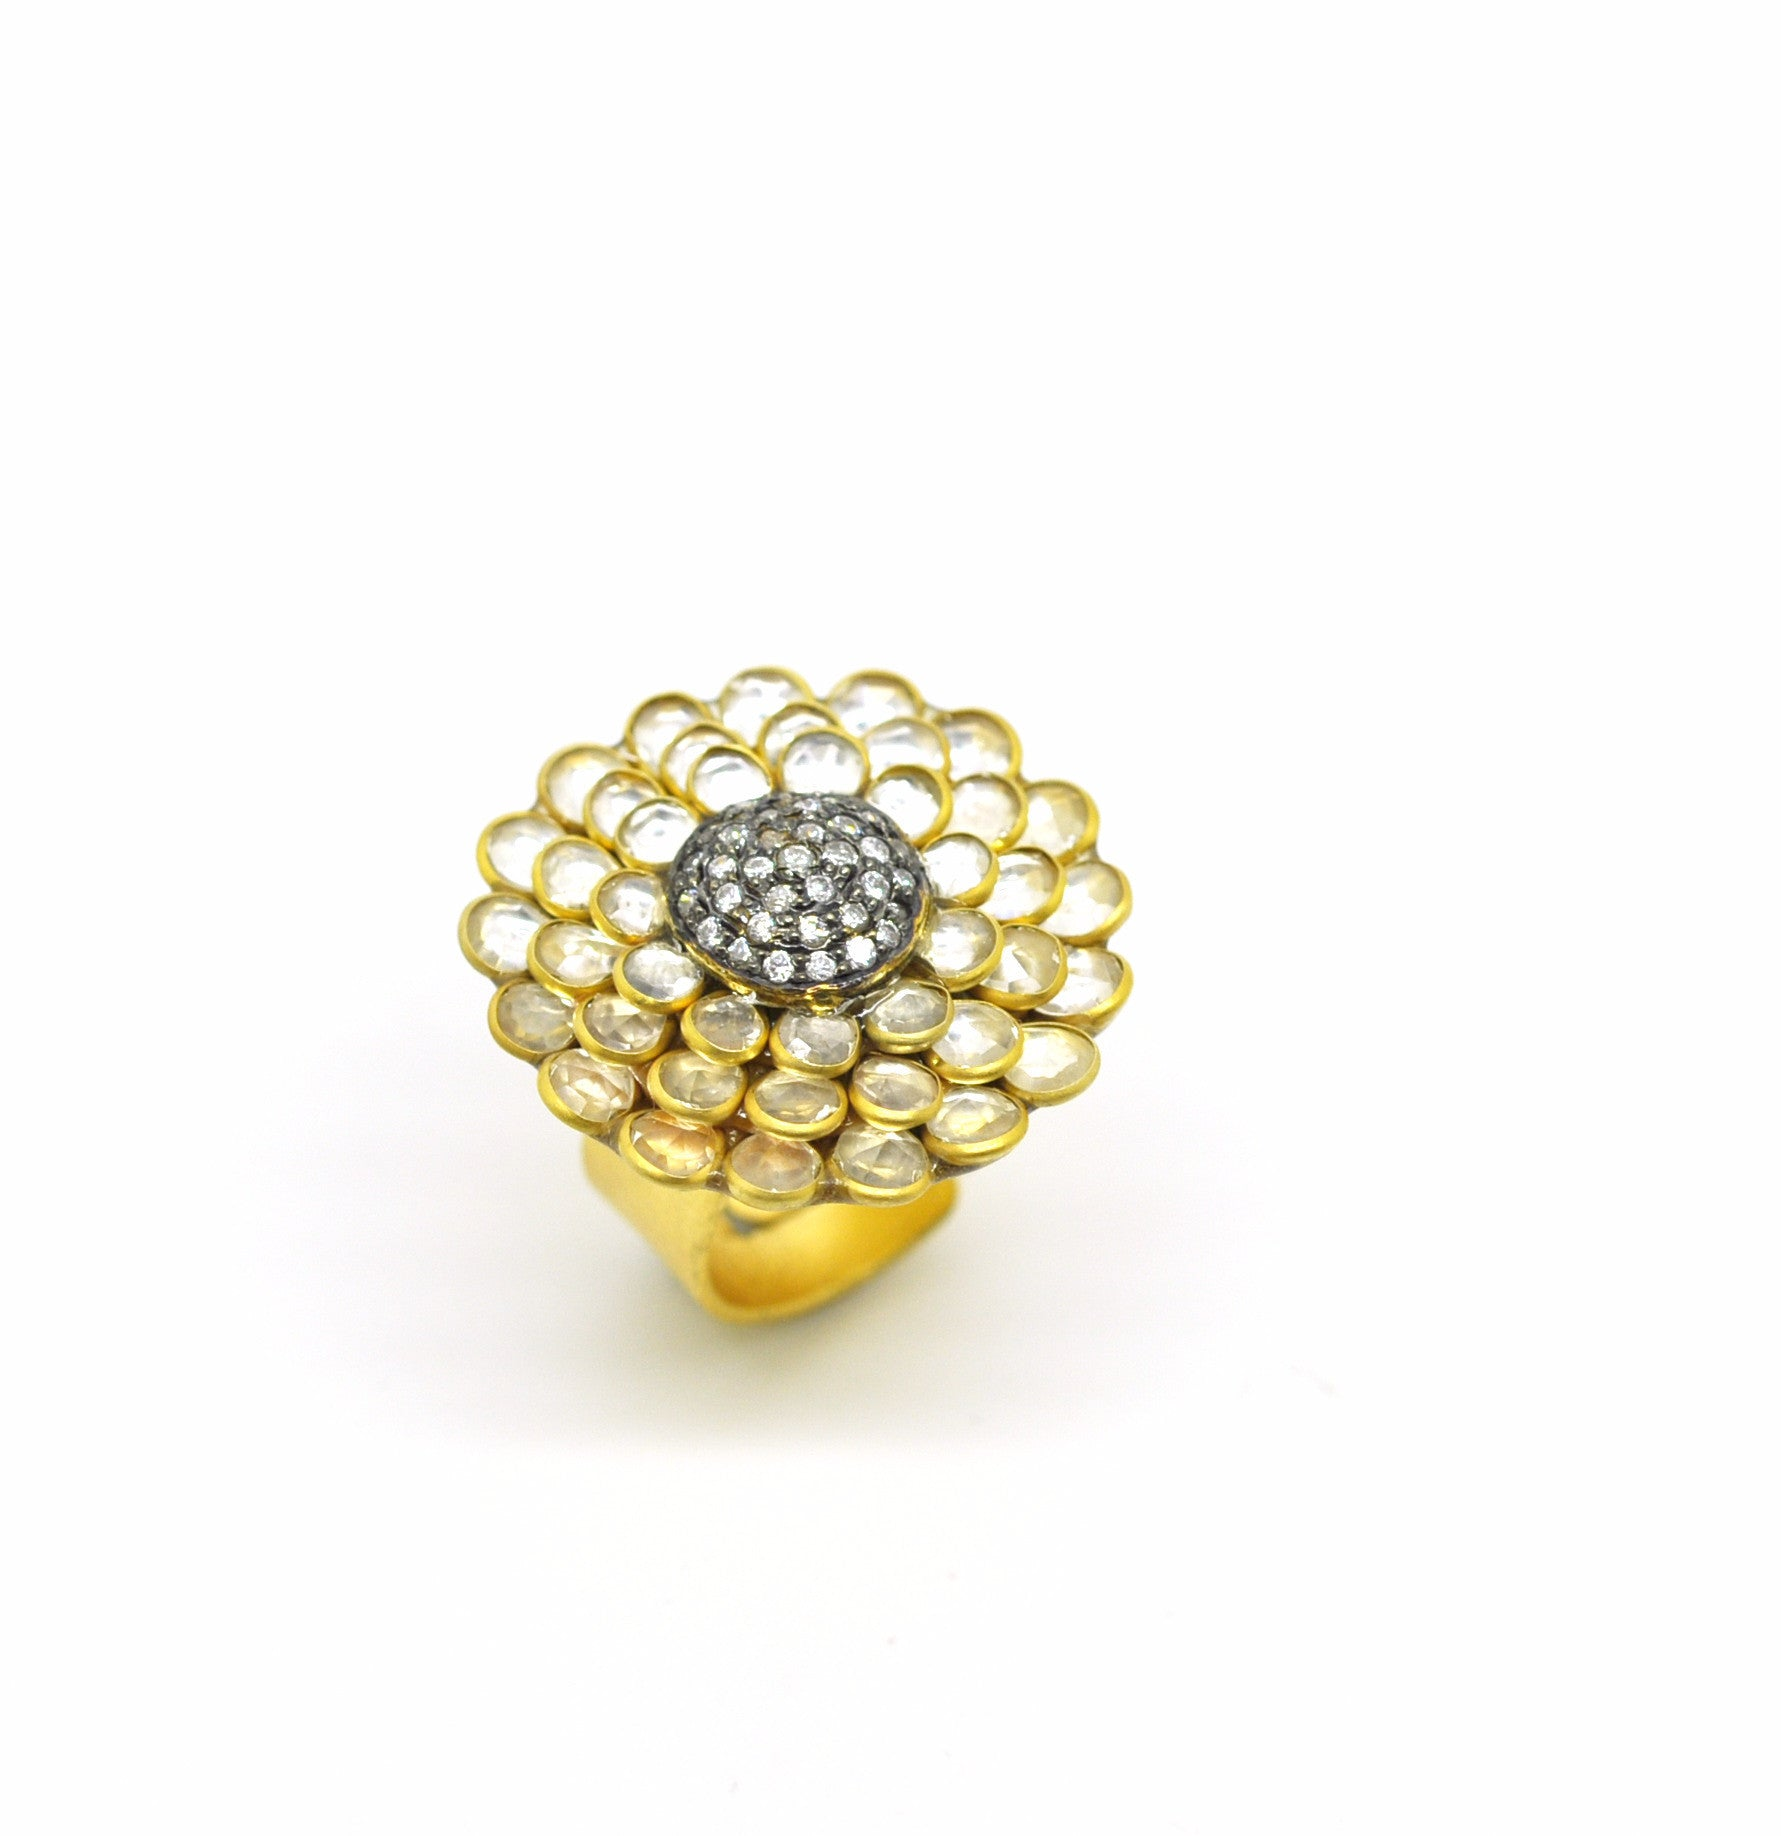 SOLD ON SALE Zircon Ring